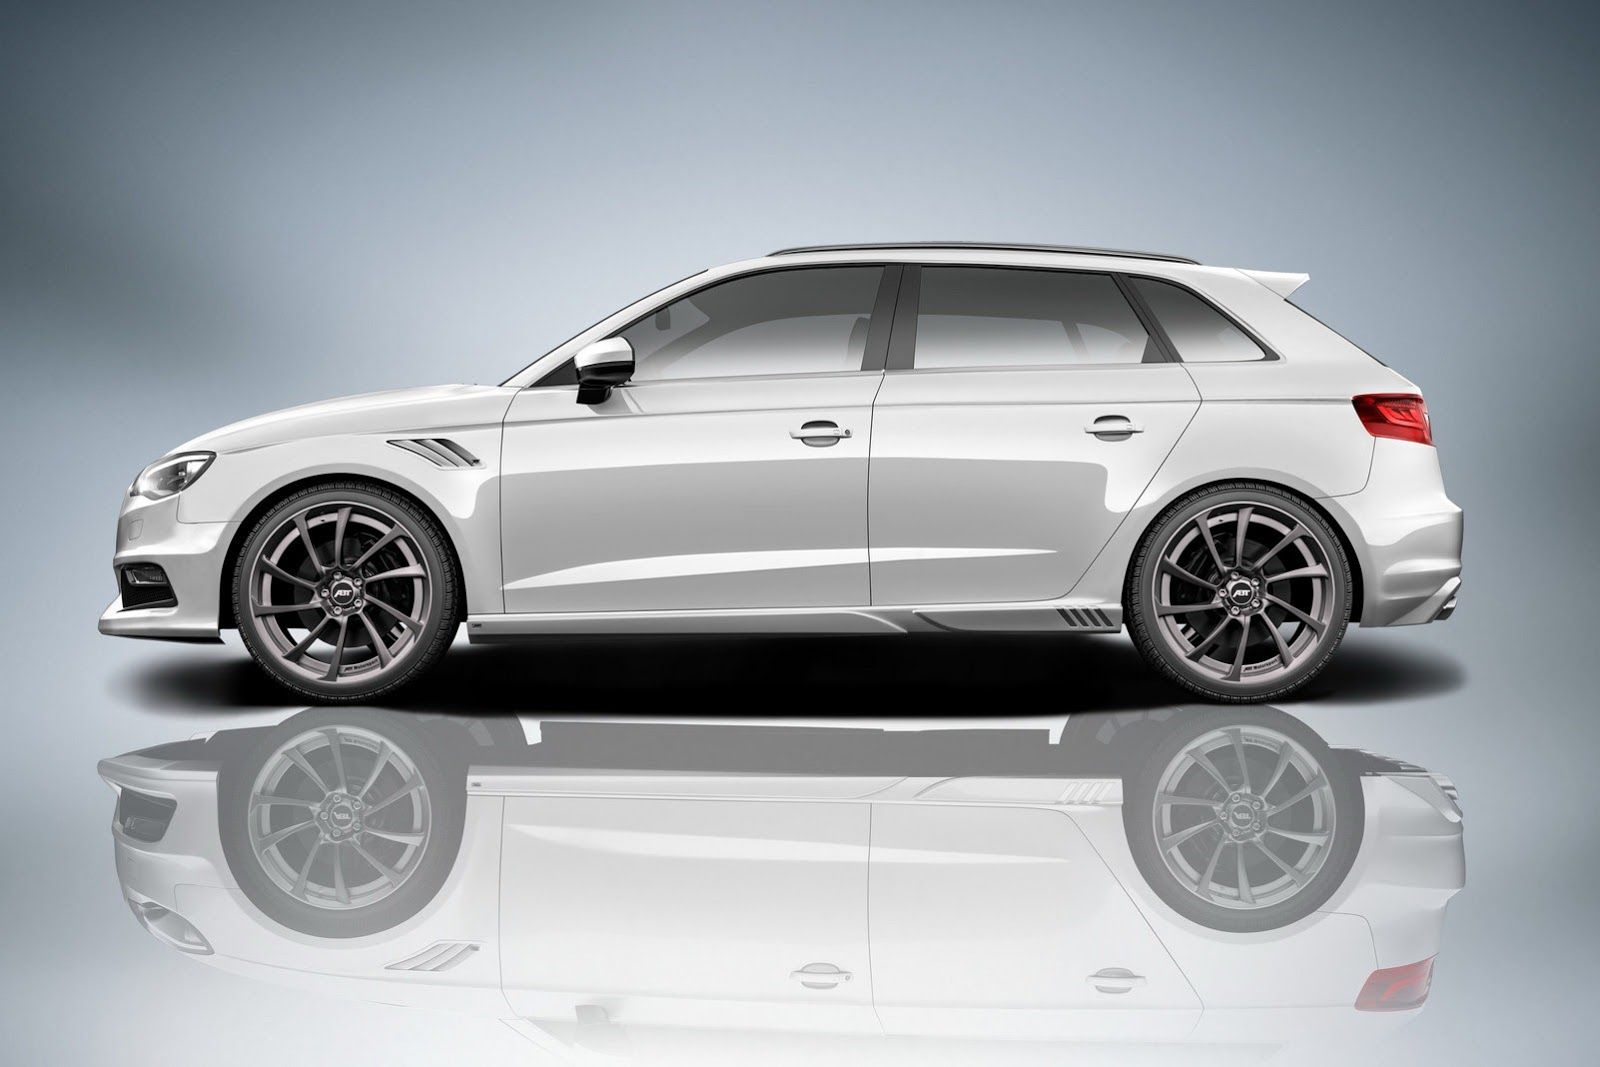 Audi A3 Sportback 2015 Tuning